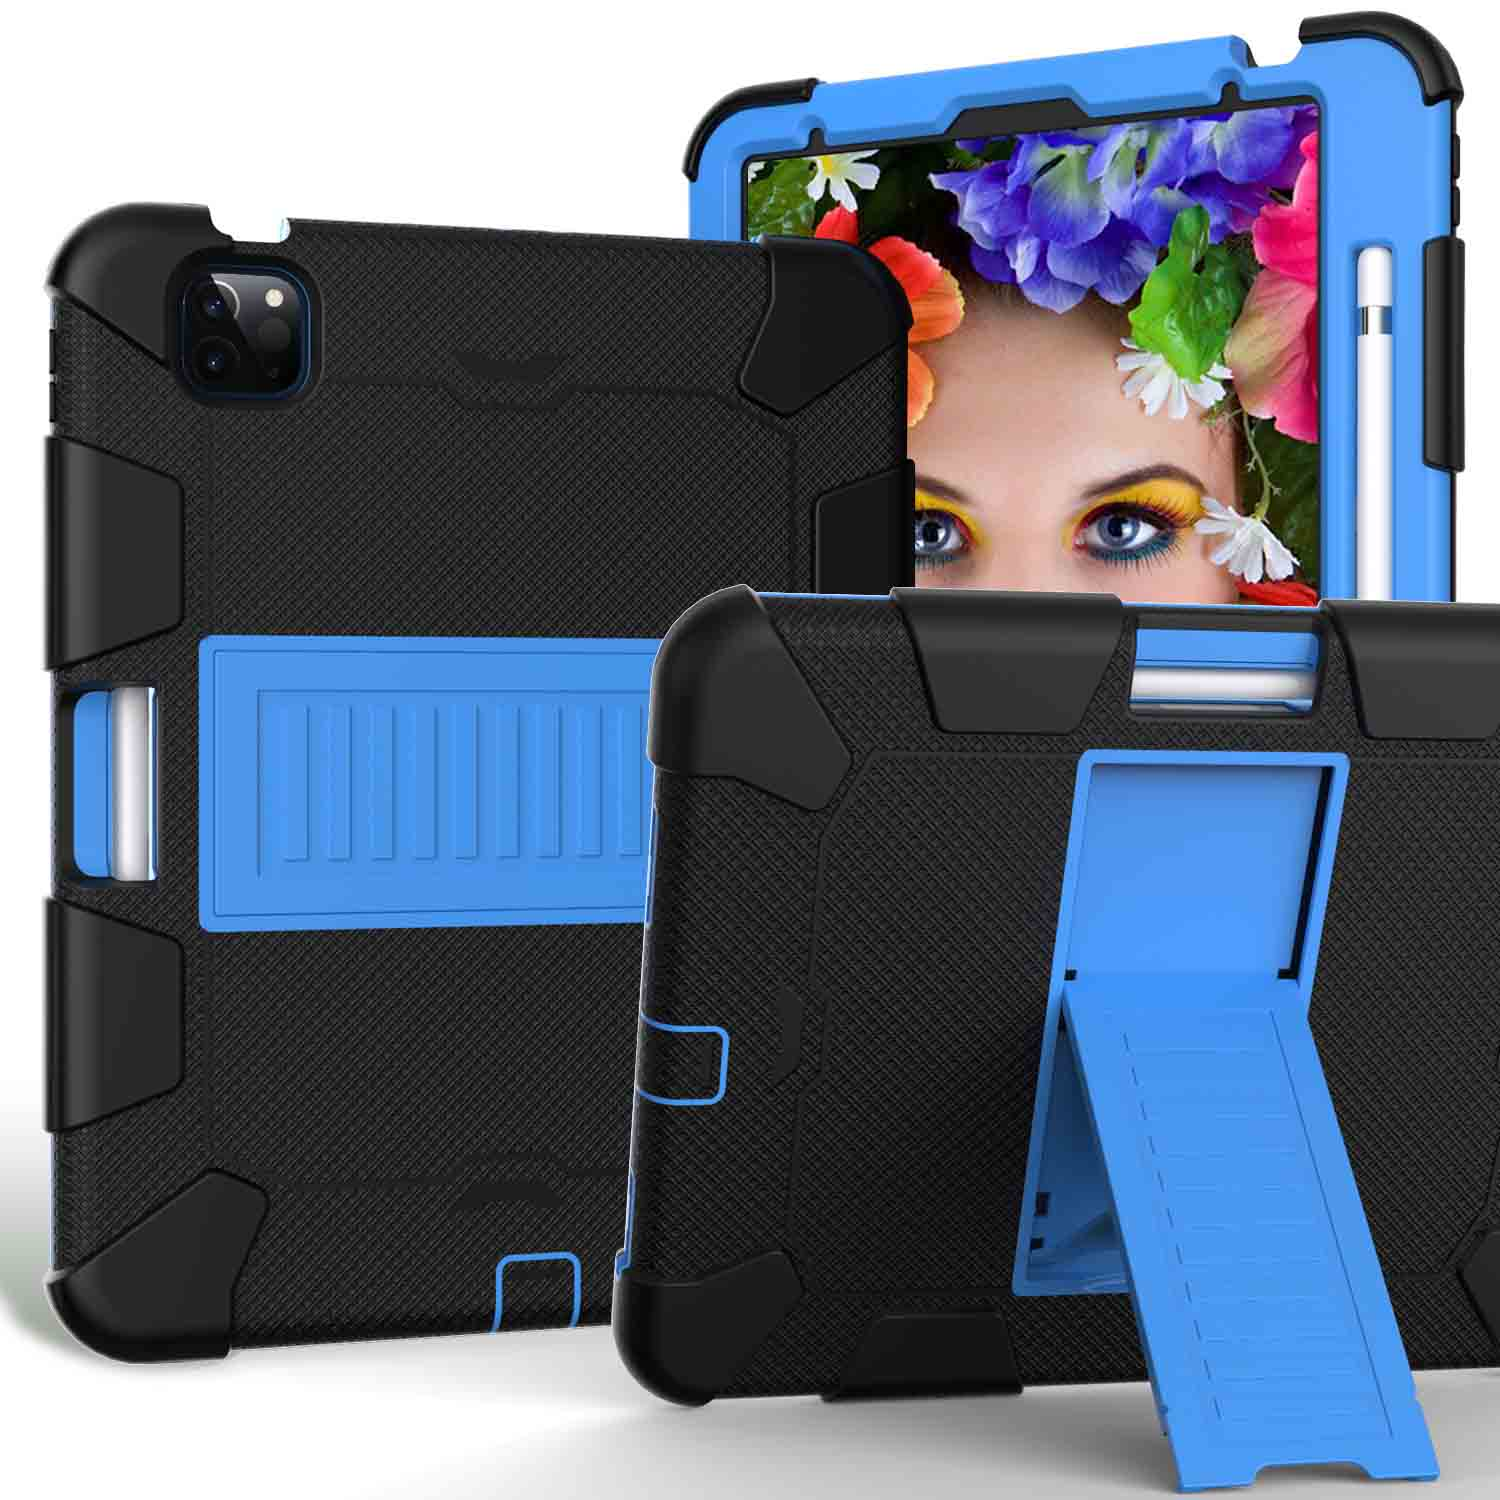 7 Red Kids Tablet Case for iPad Air 4 10 9 inch 2020 Heavy Duty Hybird Shockproof PC